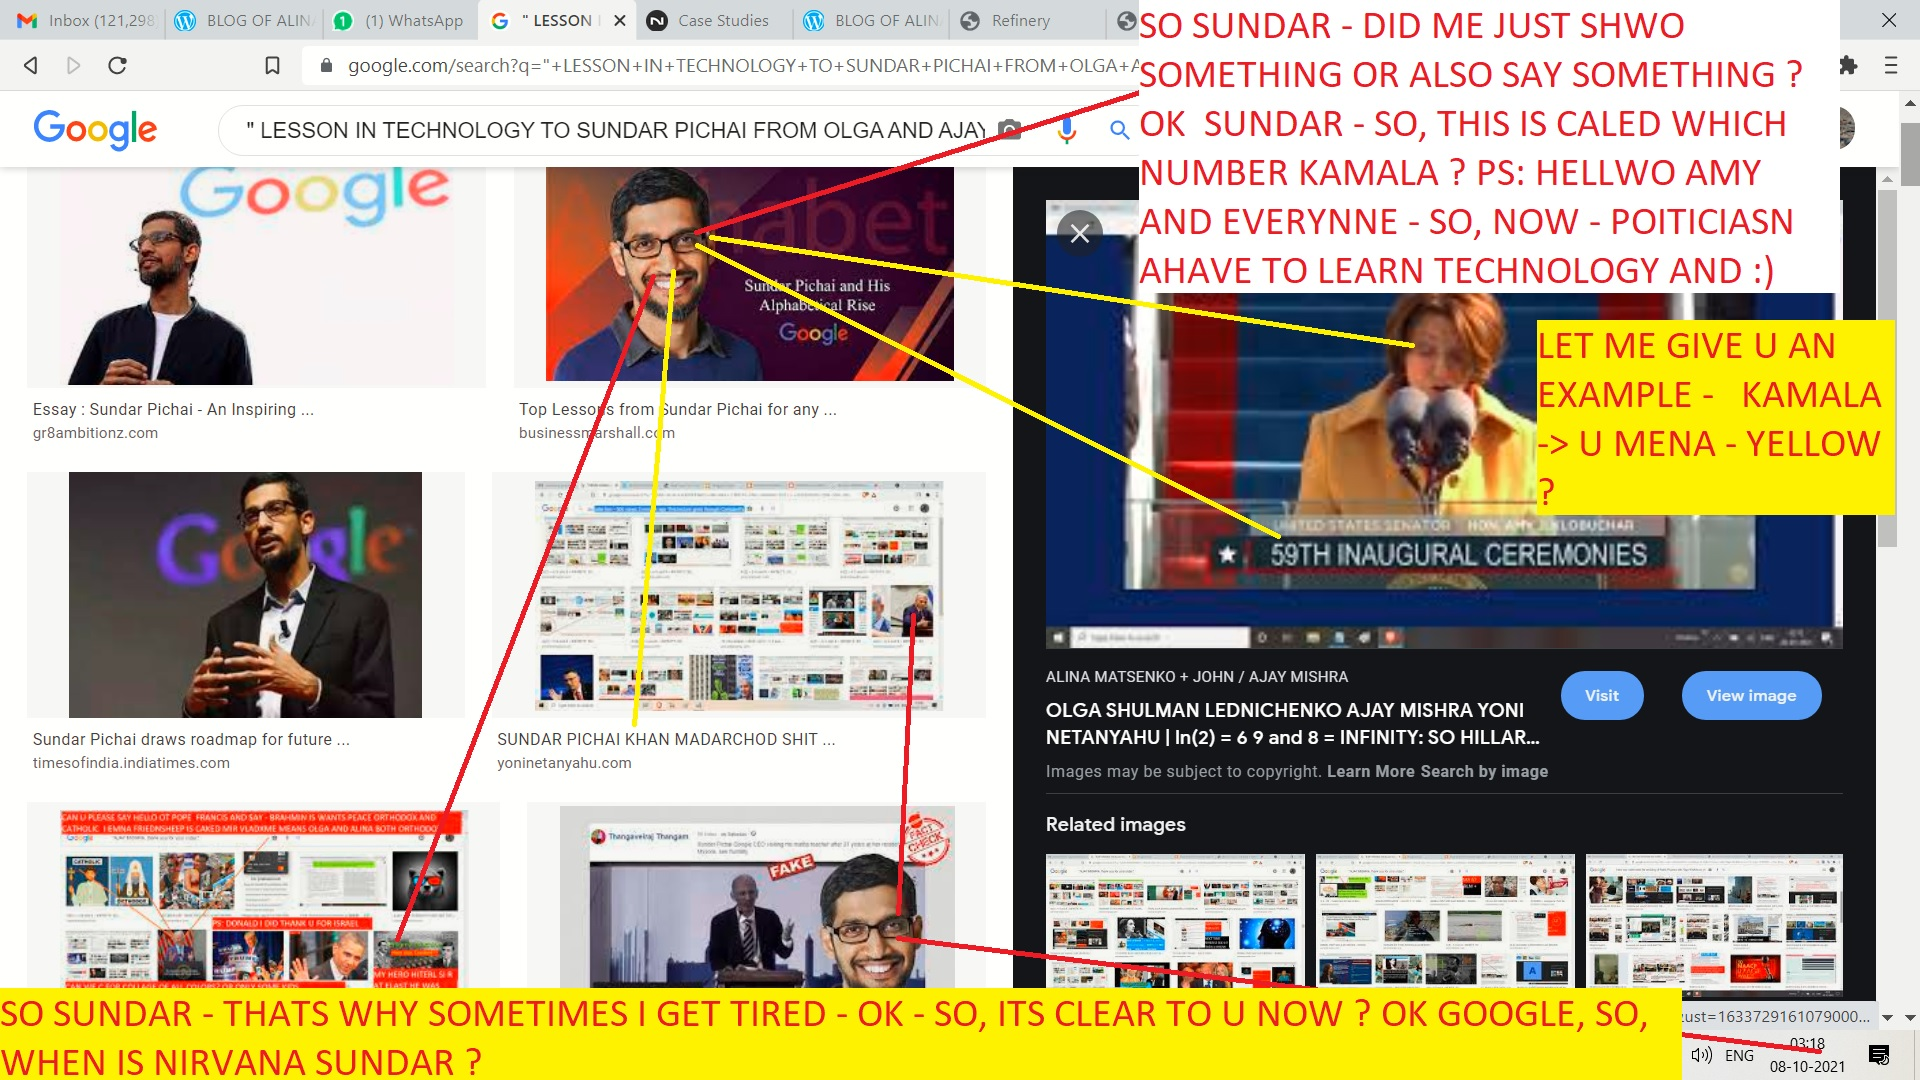 LESSONS IN ETCHNOLOGY TO SUNDAR PICHAI